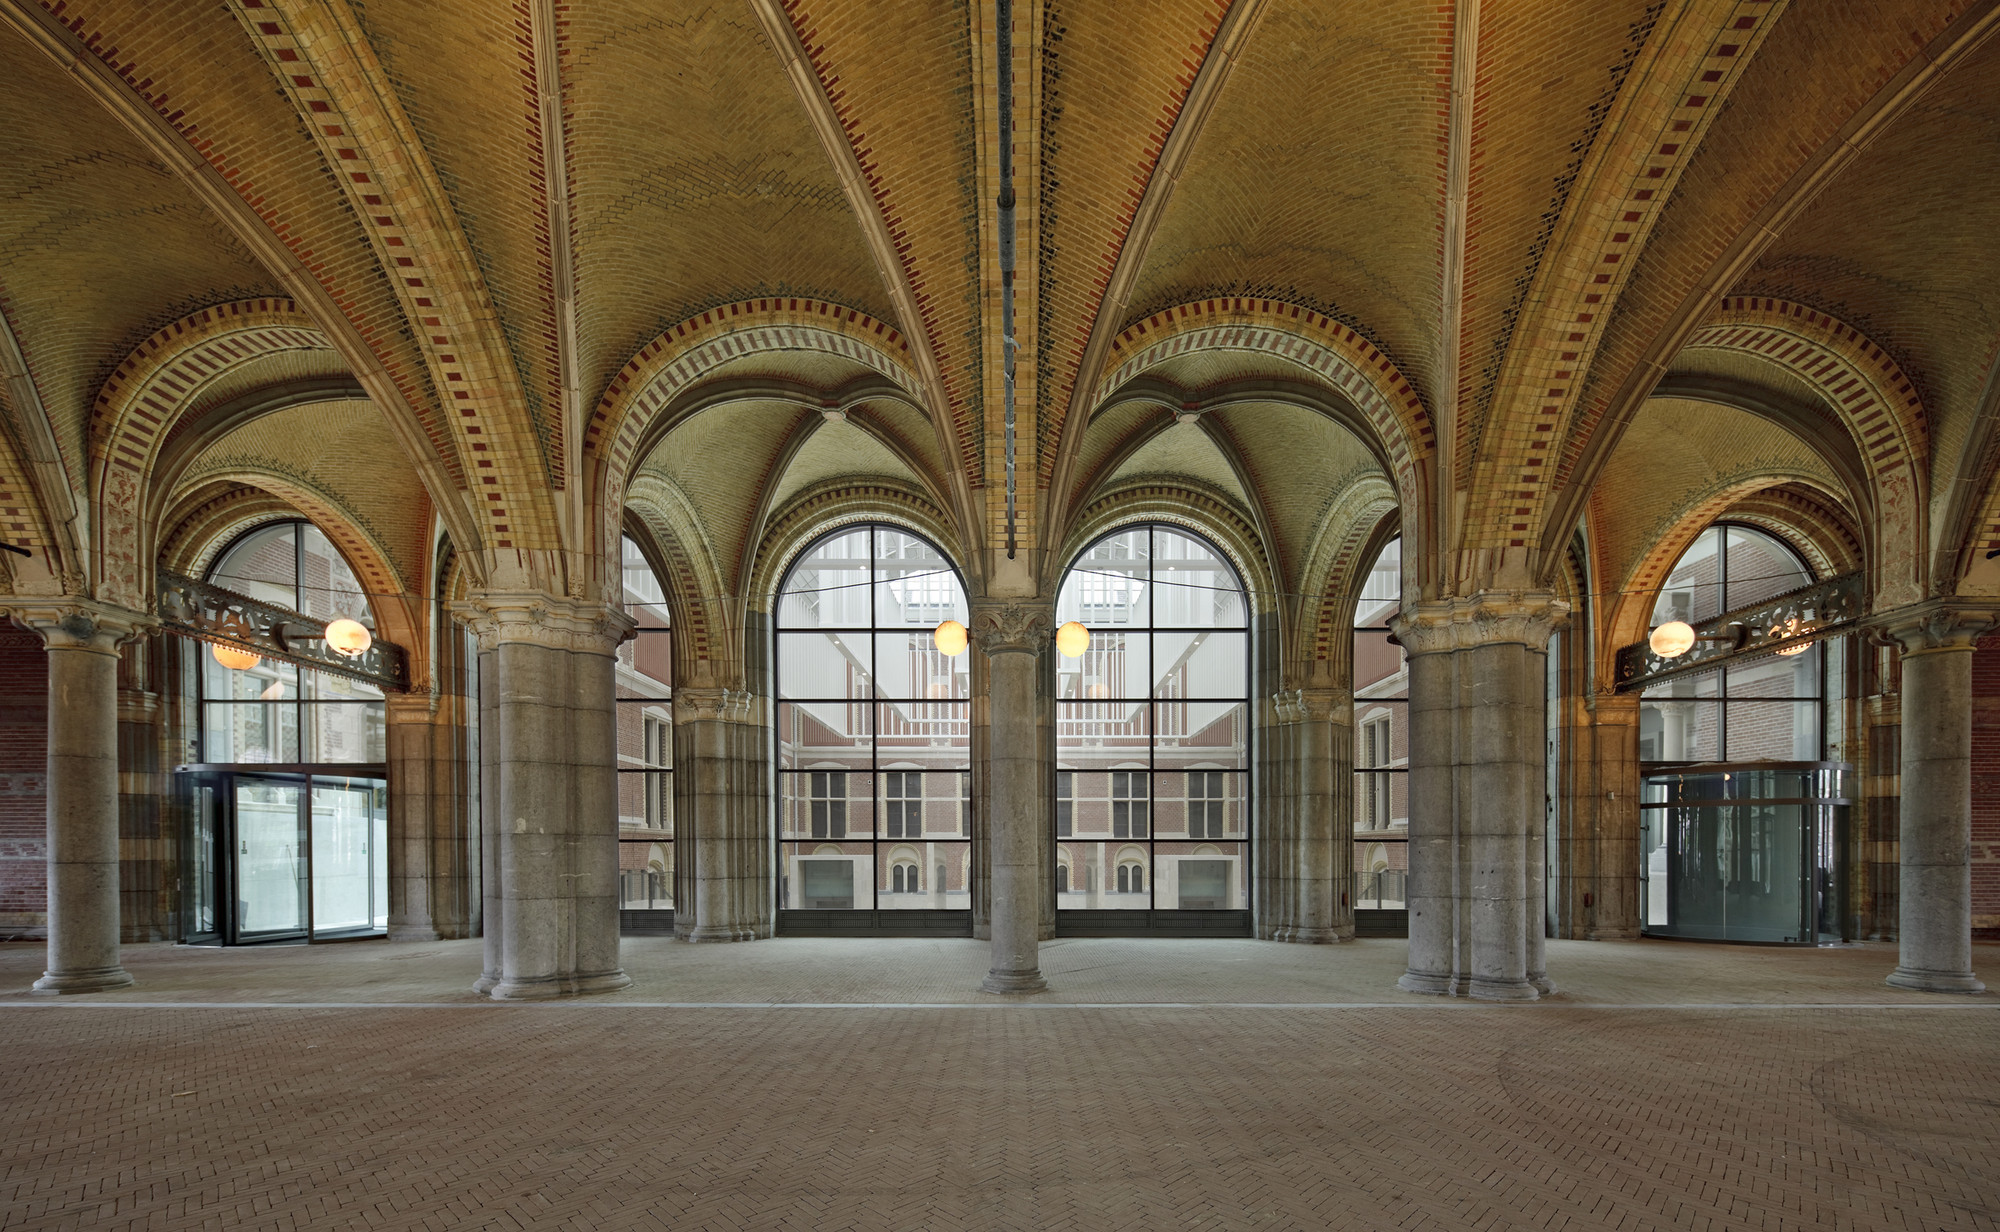 Courtesy of Rijksmuseum / Cycle & Entrance Passageway. Image © Pedro Pegenaute